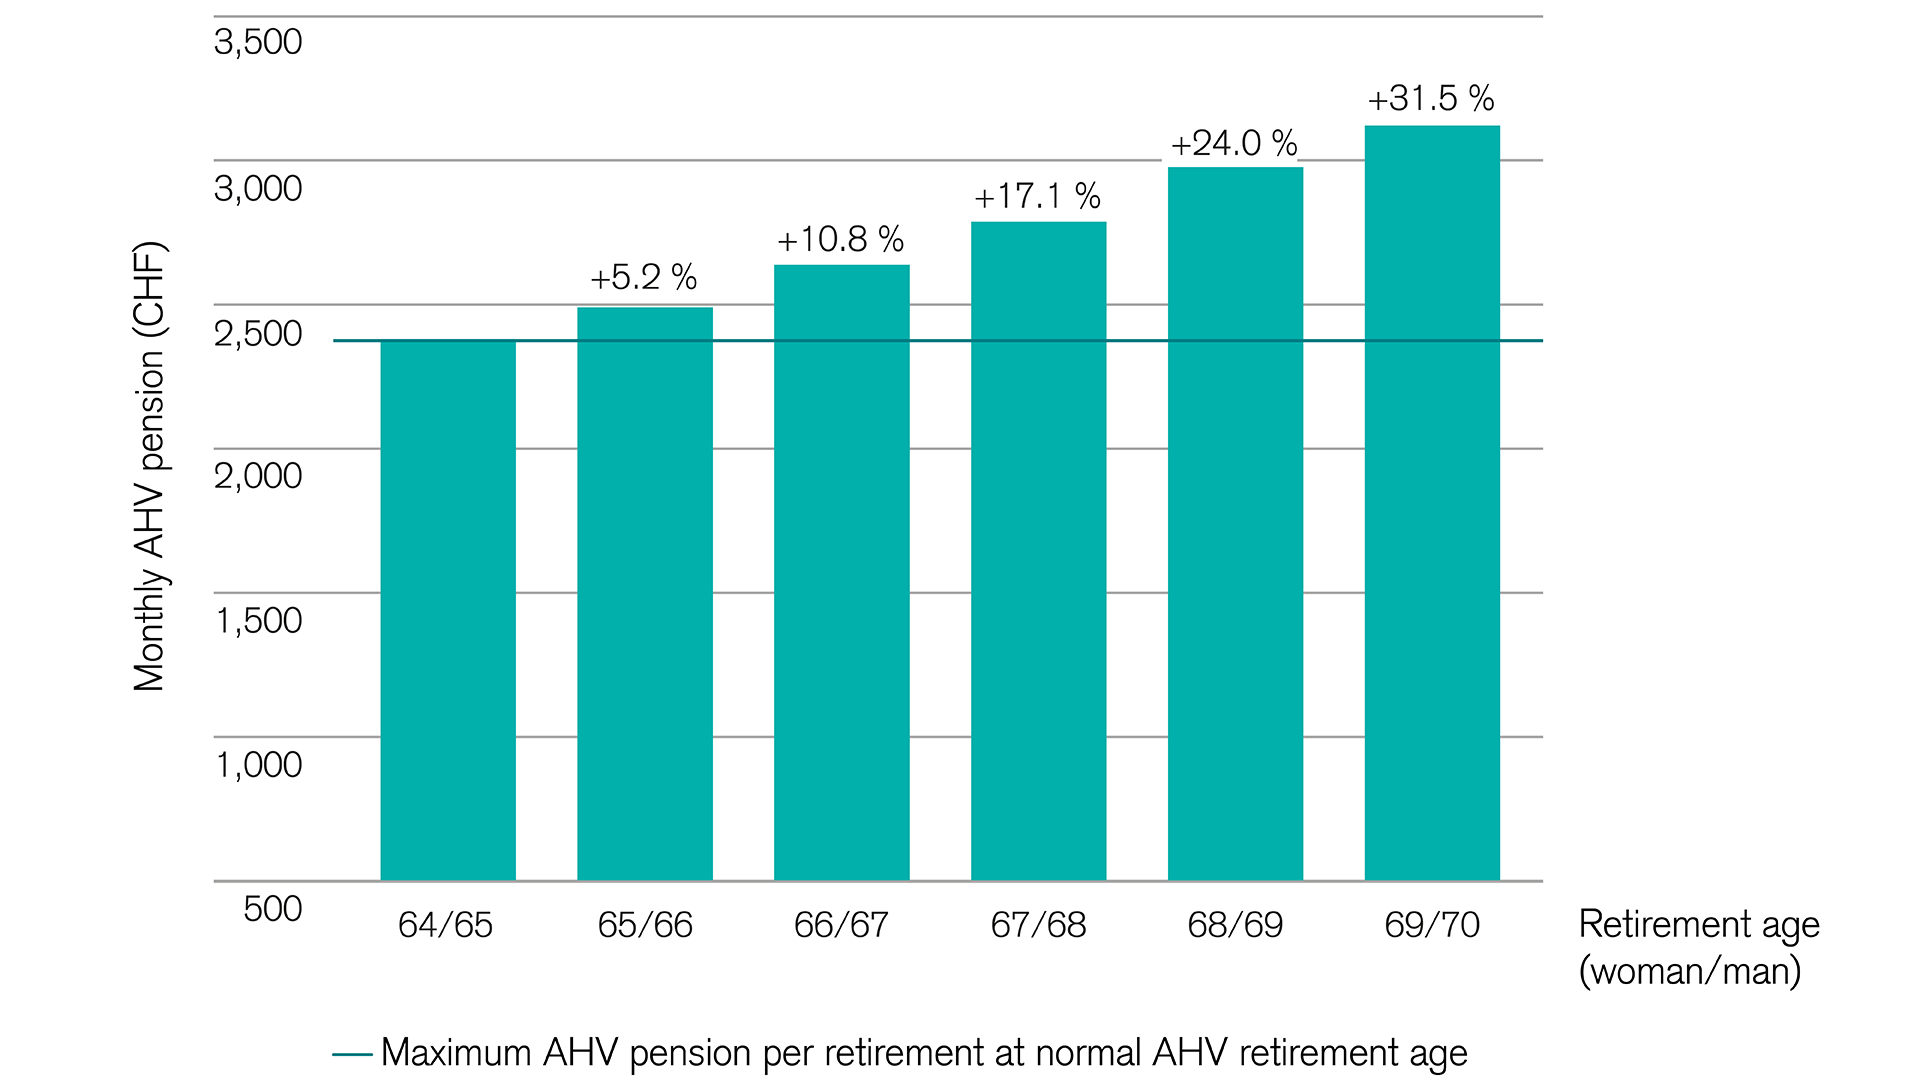 Deferring the AHV pension: How the pension increases